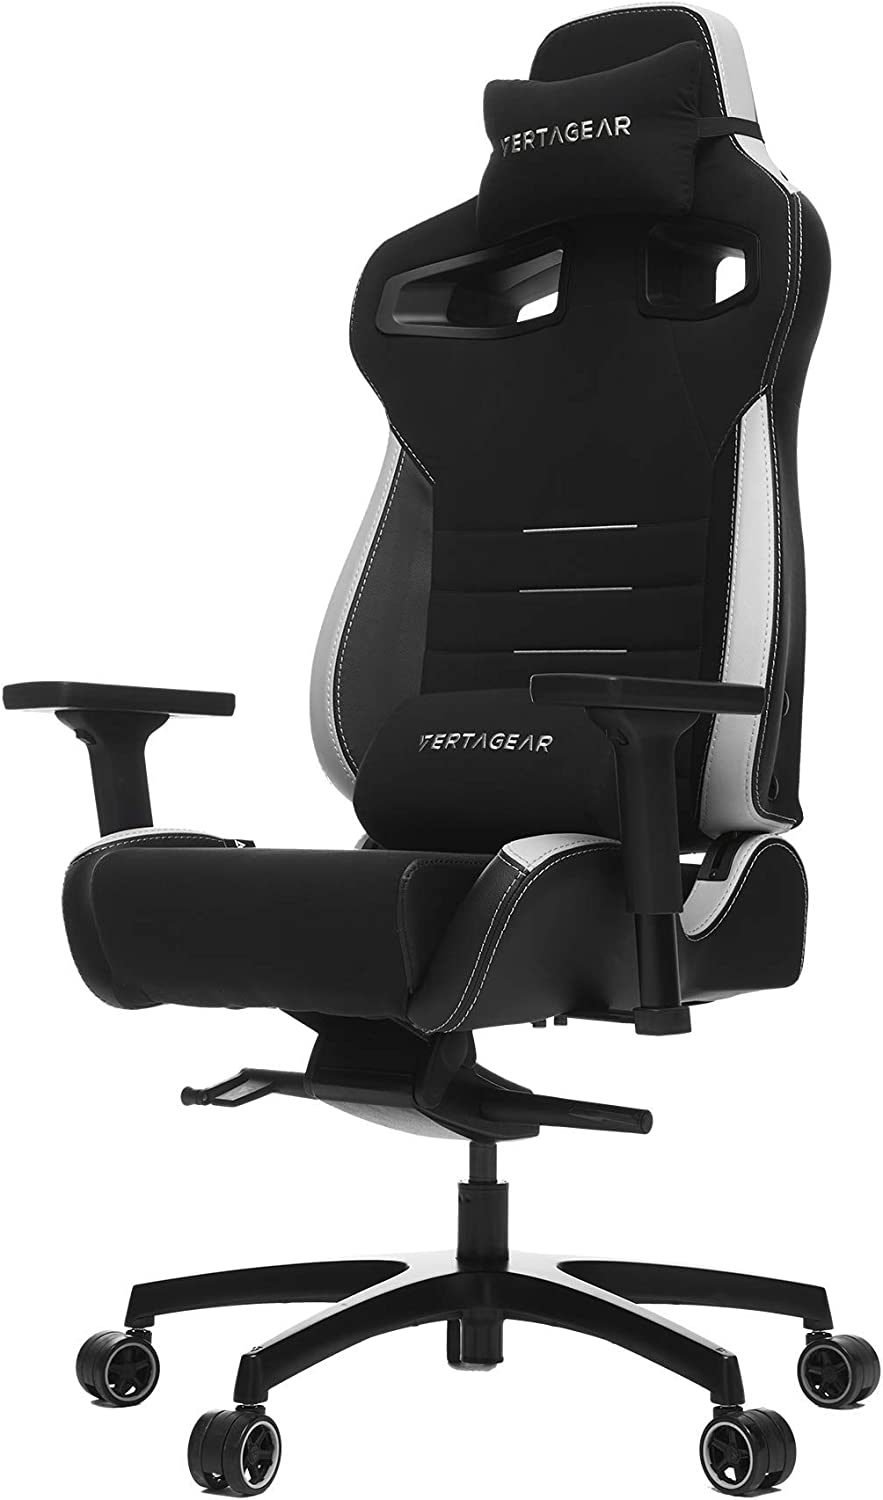 Vertagear Gaming Racing Seat Home Office Computer Coffee Fiber High Back Executive Chairs, Black/White